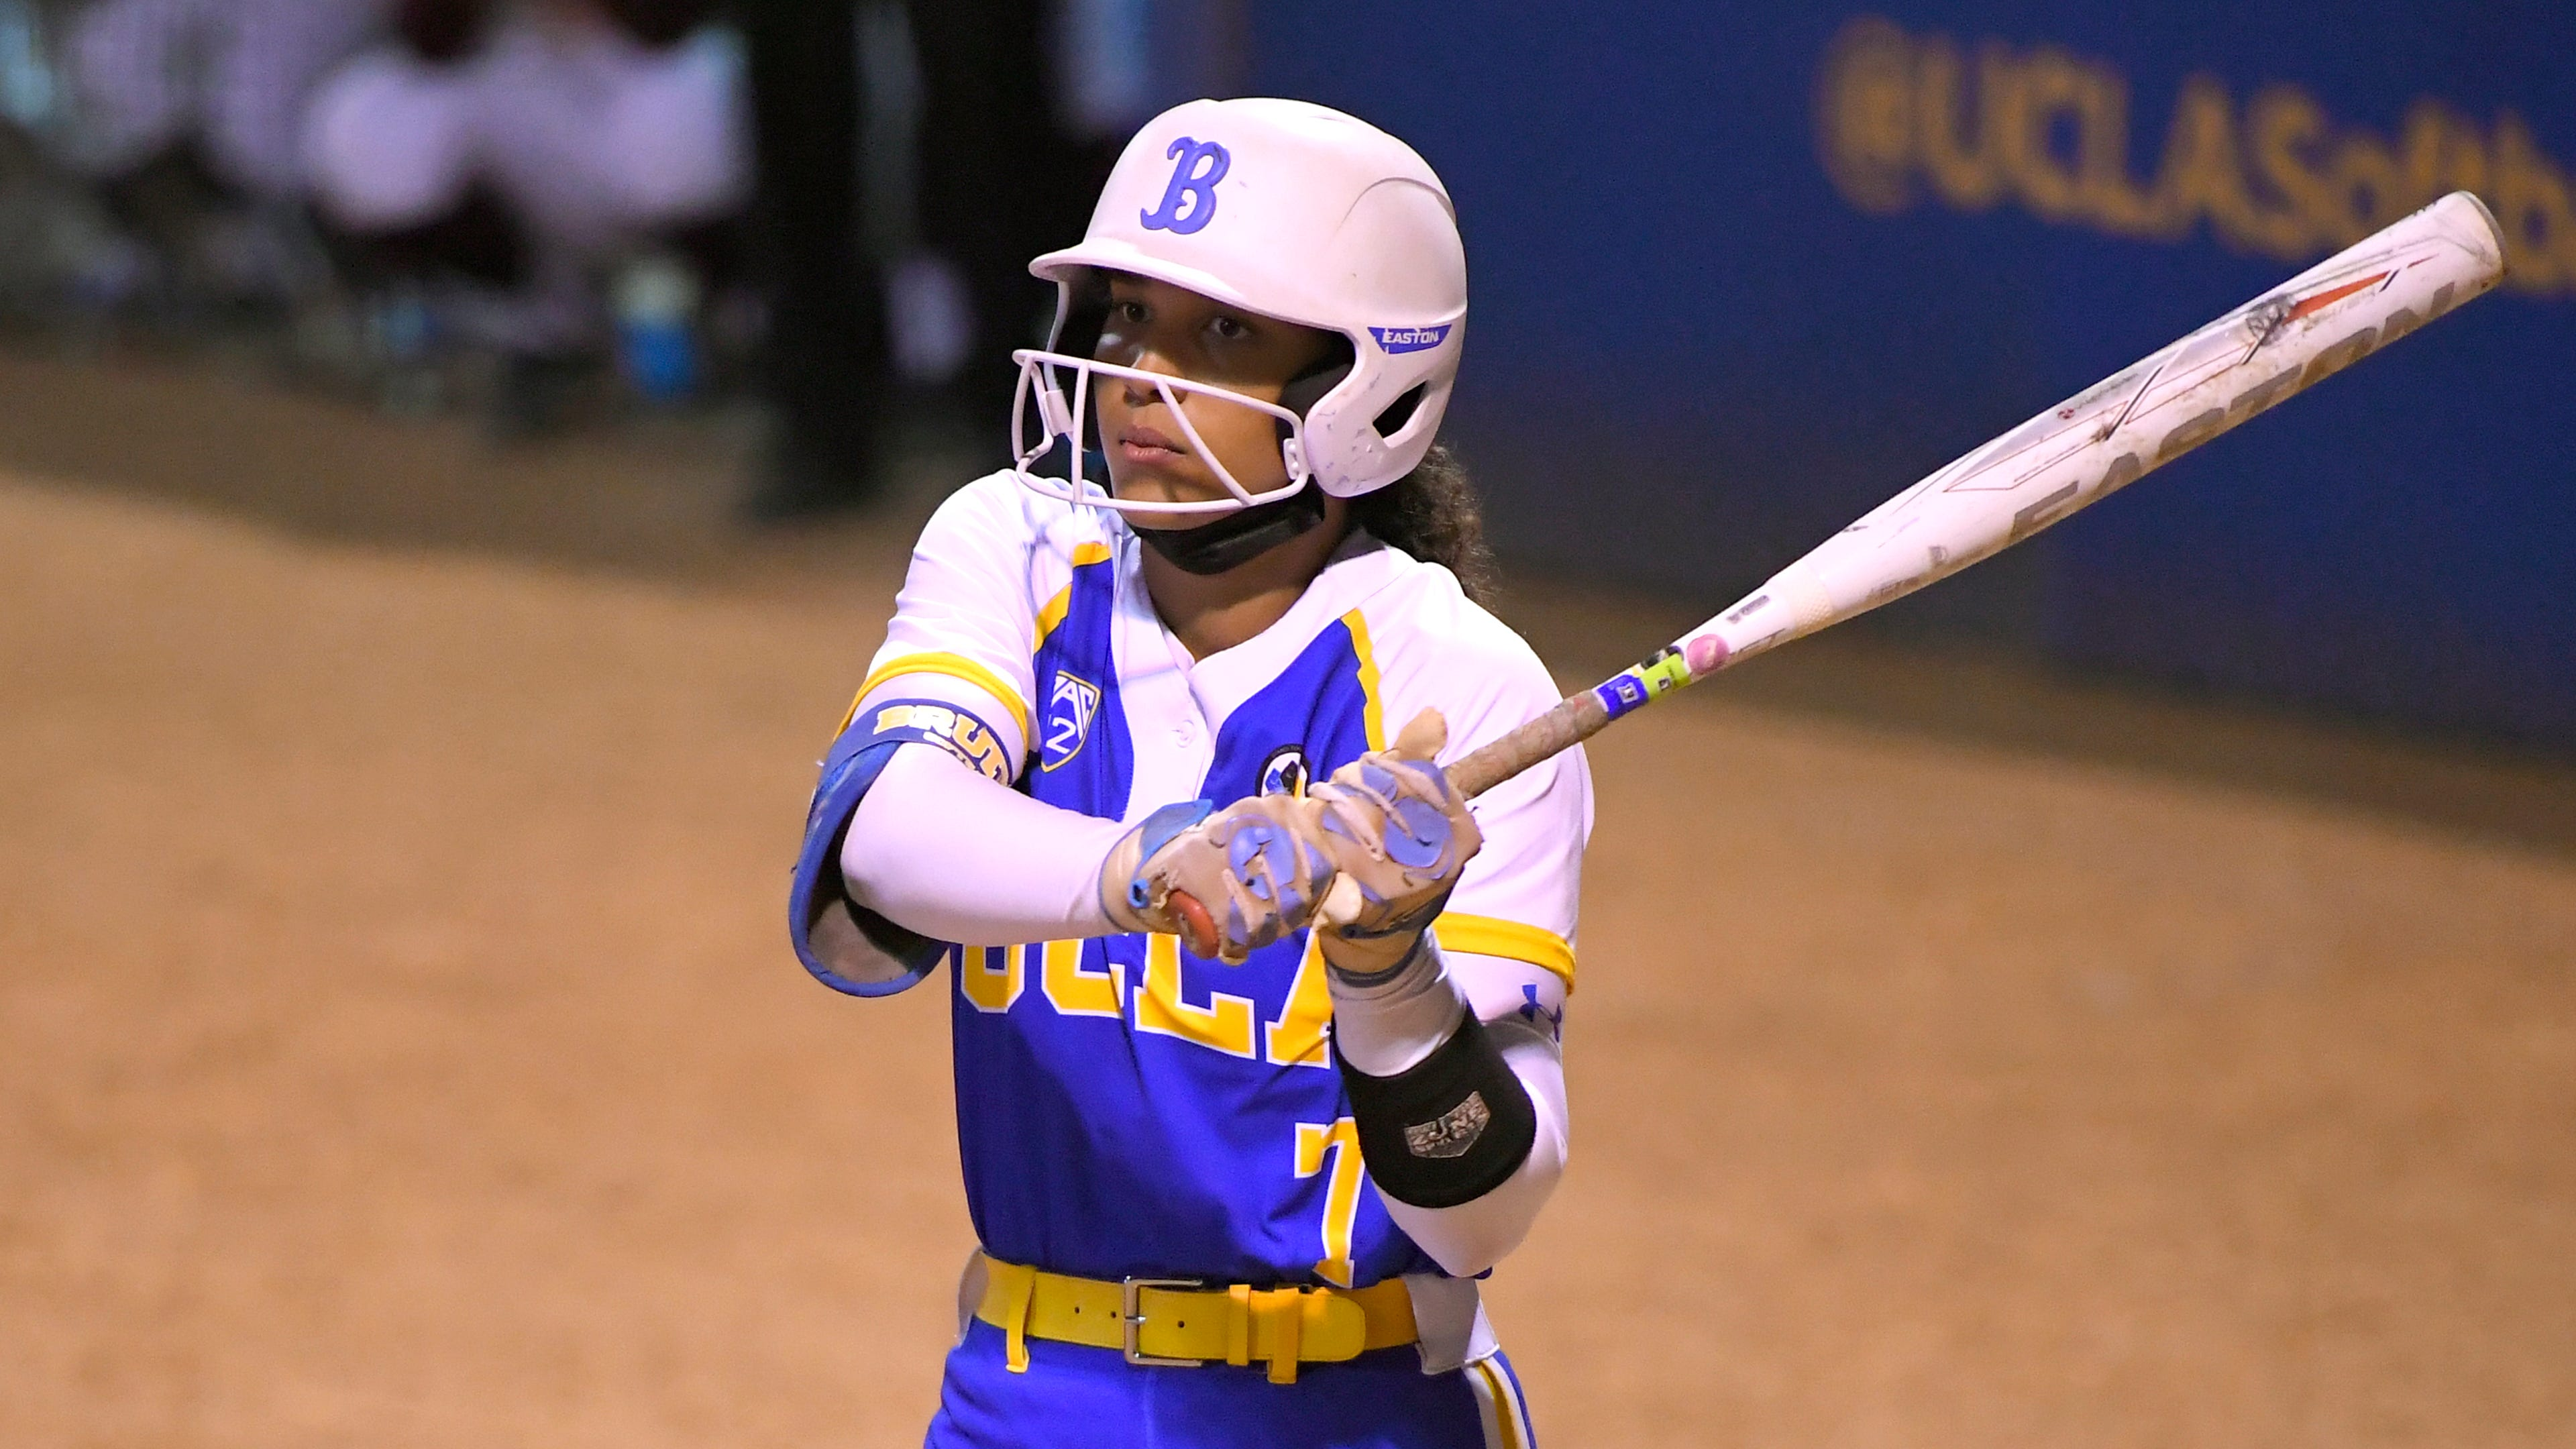 Five things to know about UCLA softball's Maya Brady: Yes, she's related to the Super Bowl guy